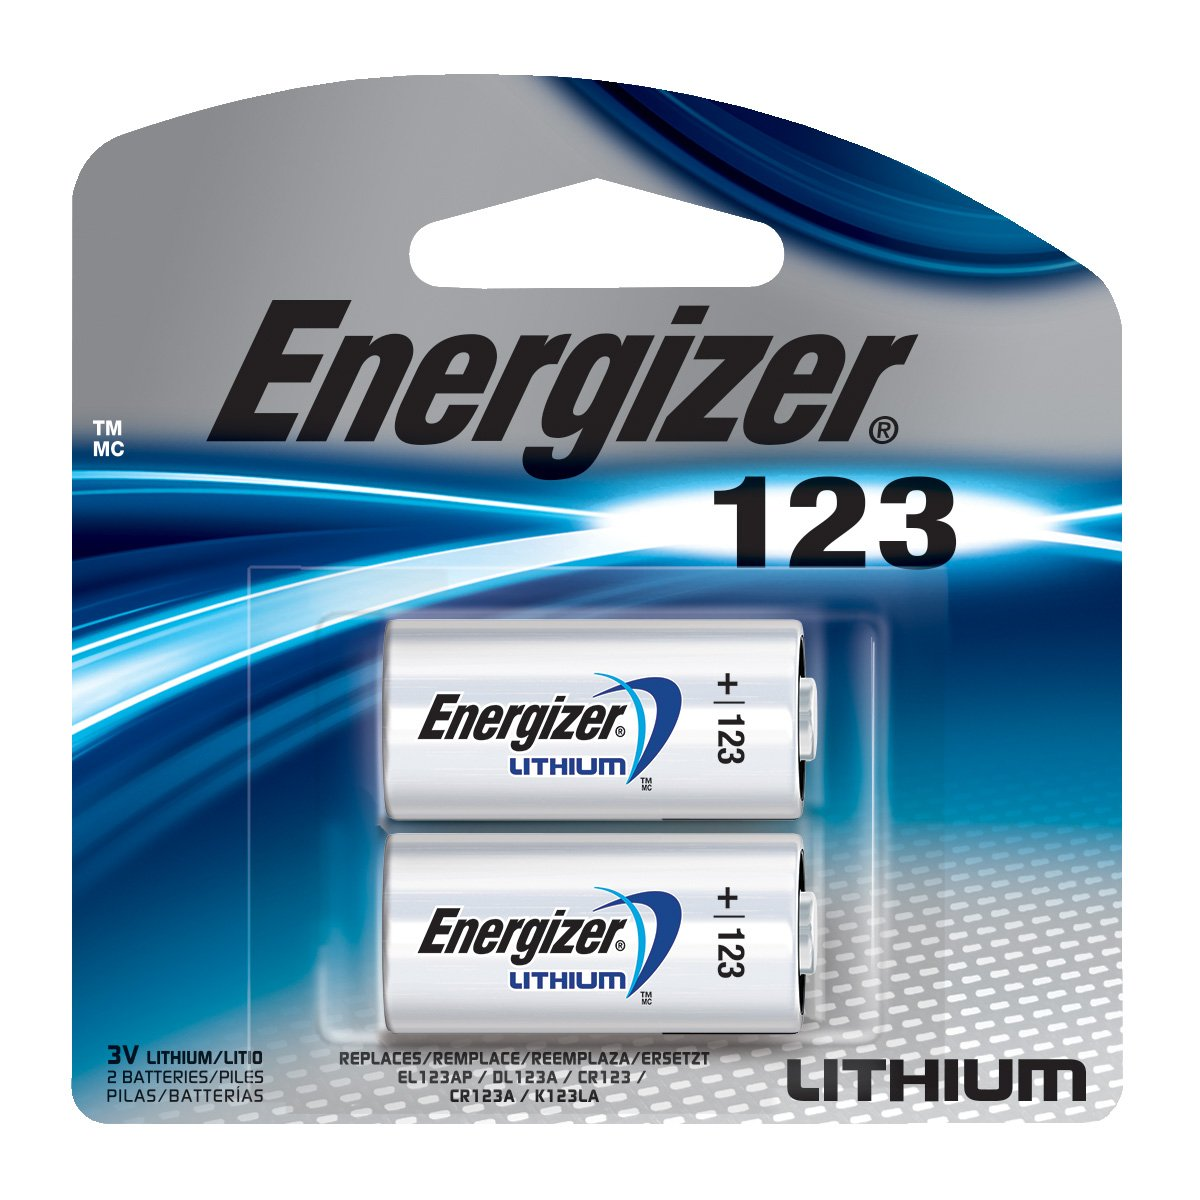 Amazon.com: Energizer 123 3V Lithium Battery, 2 Count: Health & Personal Care